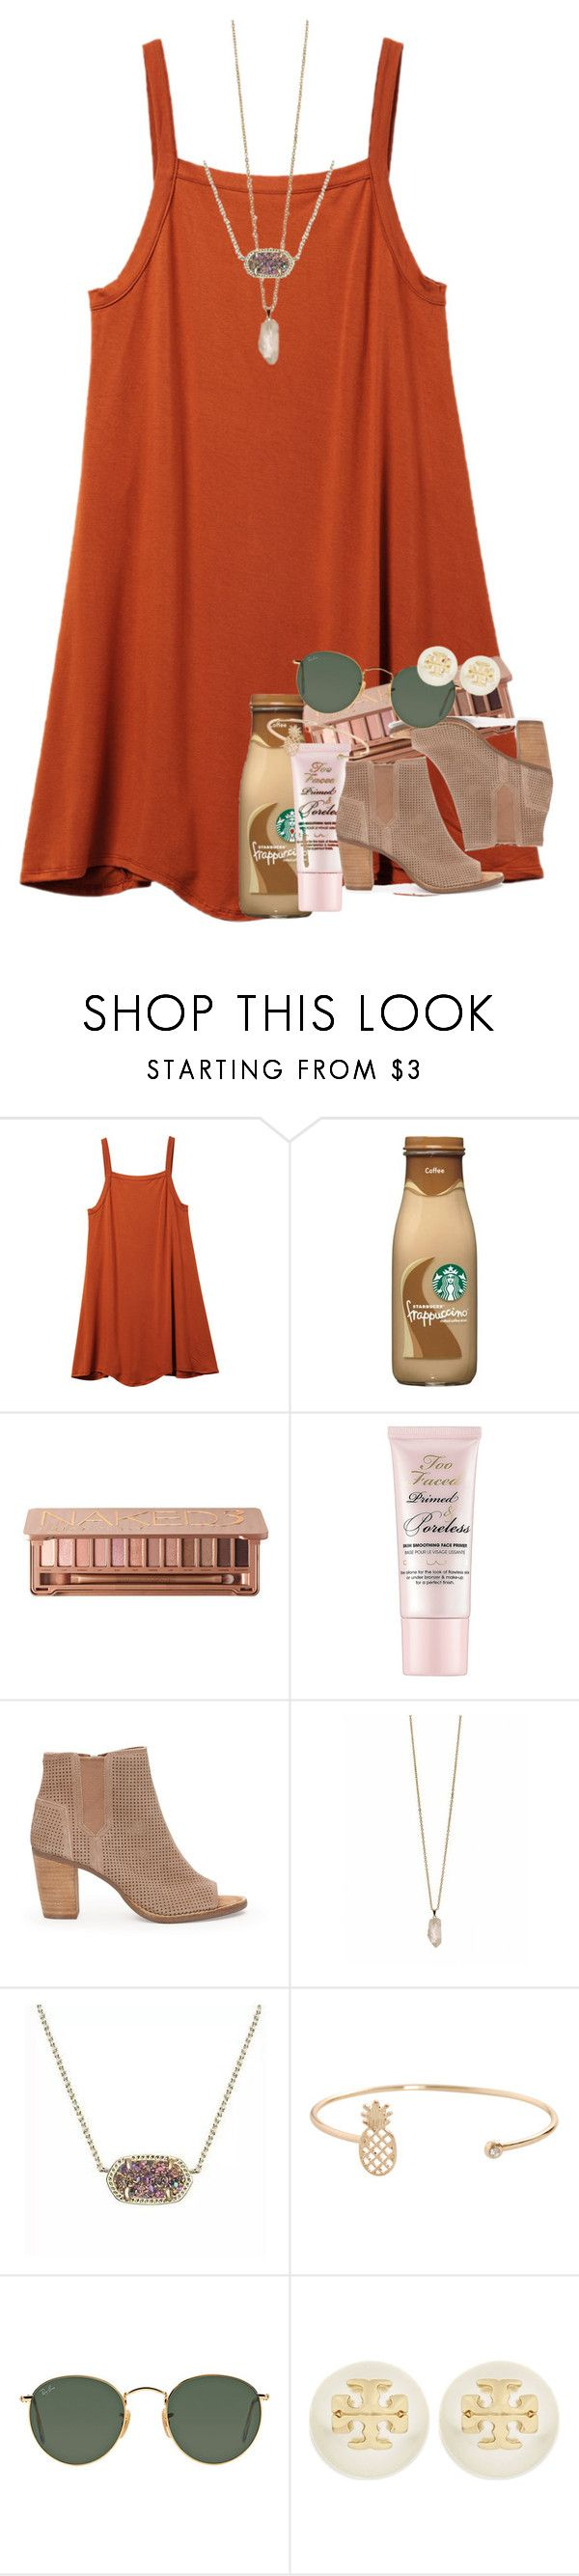 """""""binge watching grey's (:"""" by ellaswiftie13 on Polyvore featuring RVCA, Too Faced Cosmetics, TOMS, Zoya, Kendra Scott, Humble Chic, Ray-Ban and Tory Burch"""